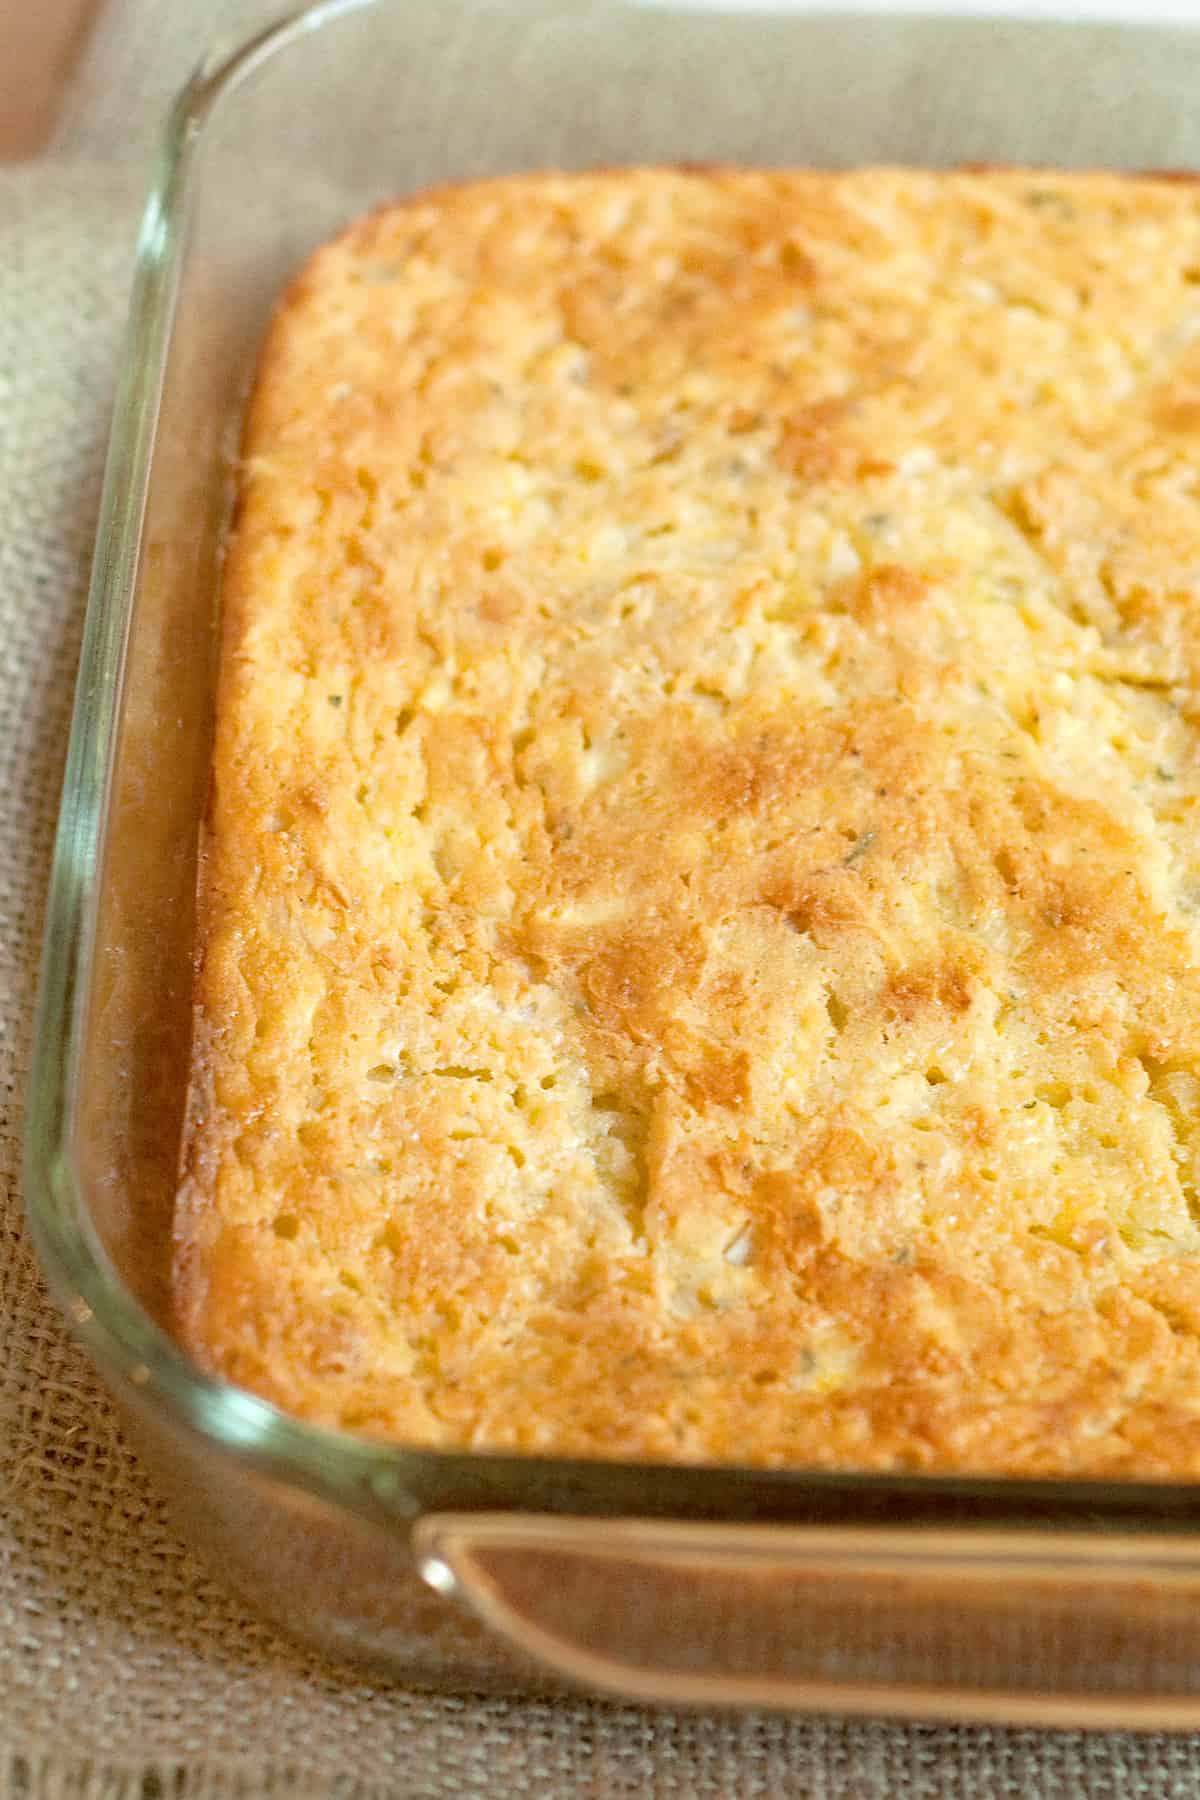 Finished squash and cornbread casserole in a baking dish.